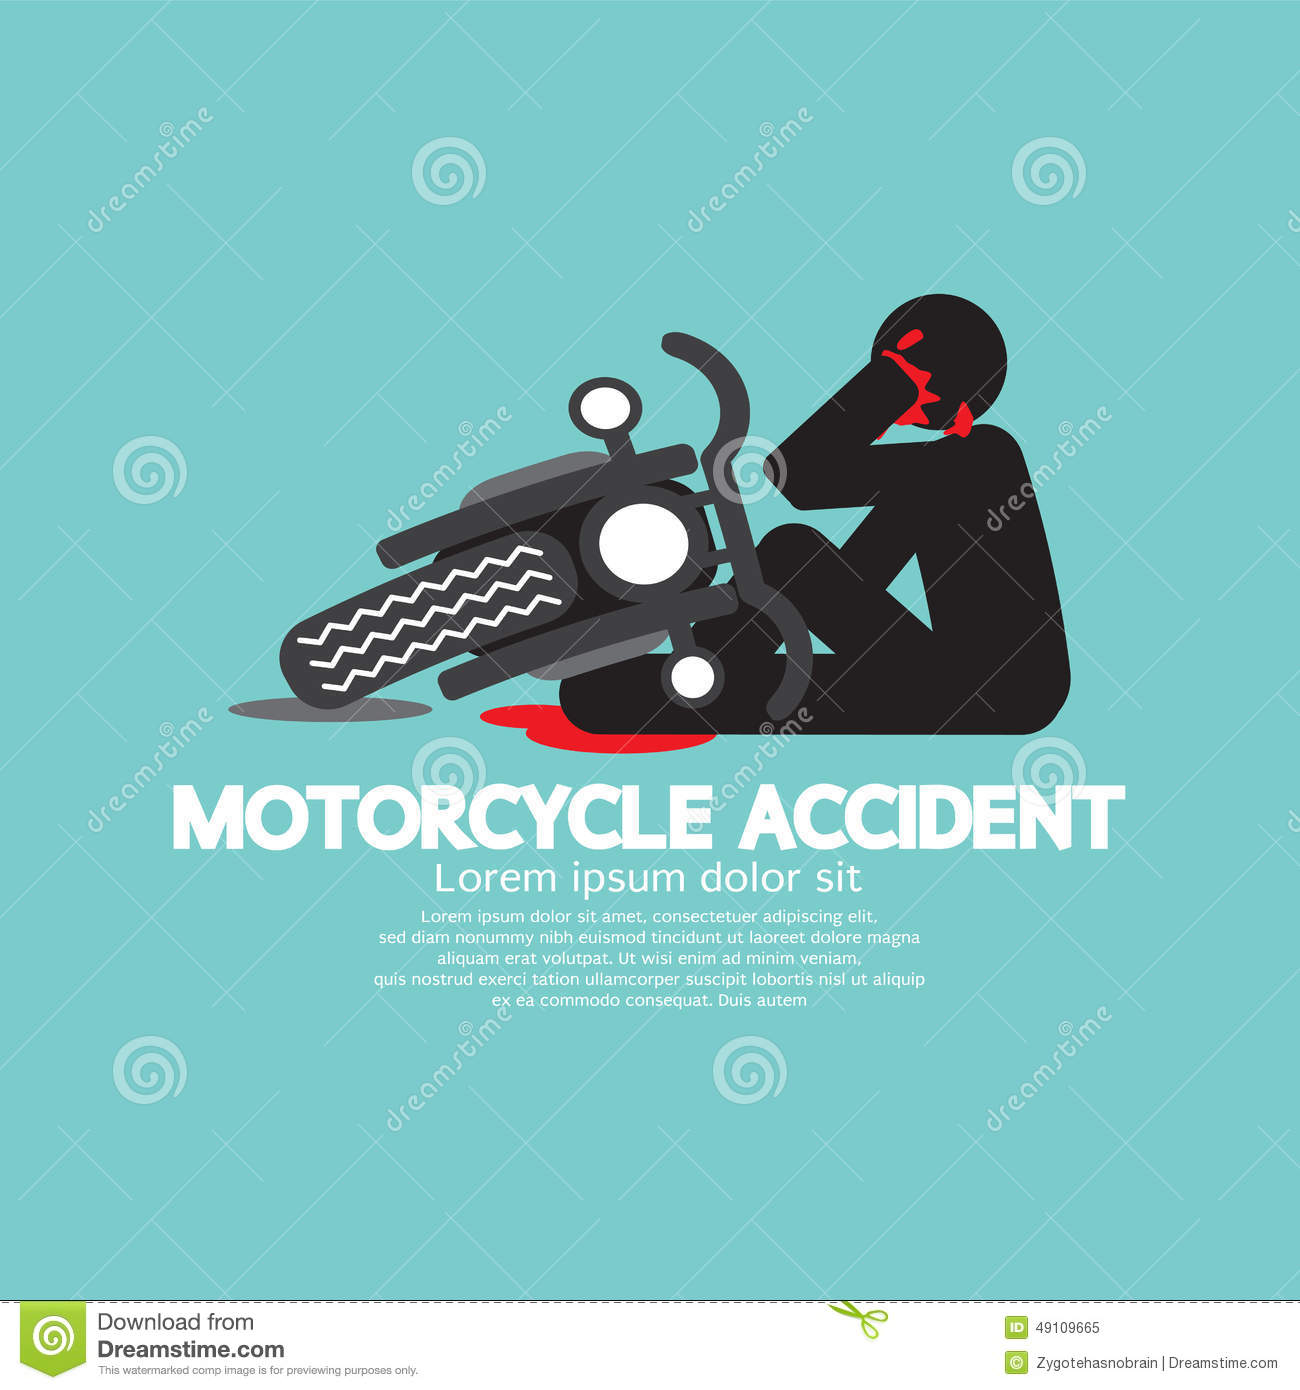 motorcycle crash clipart  Biker With Motorcycle Have In An Accident Stock Vector ...